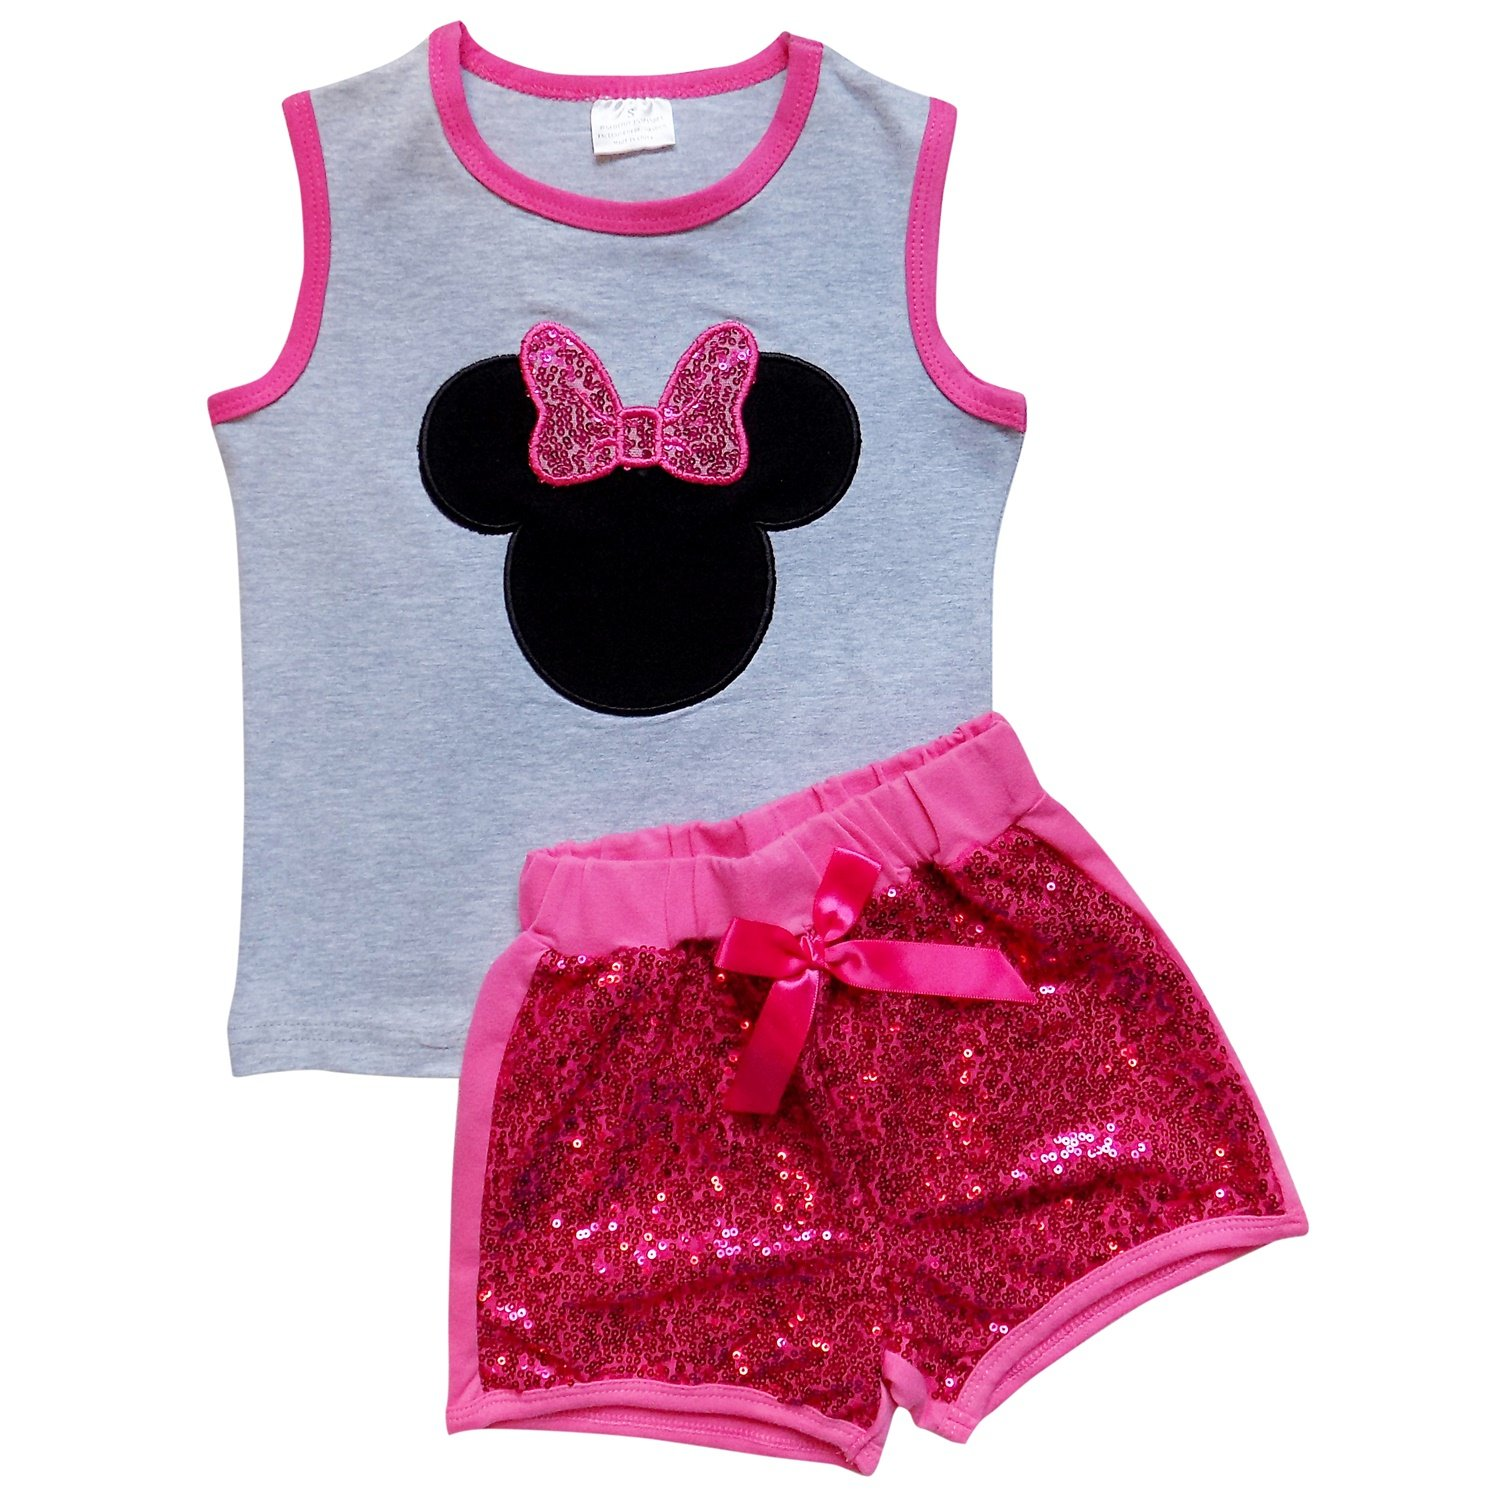 So Sydney Girls Toddler Sequin Novelty Summer Pool Beach Vacation Shorts Outfit (M (4T), Mouse Hot Pink)